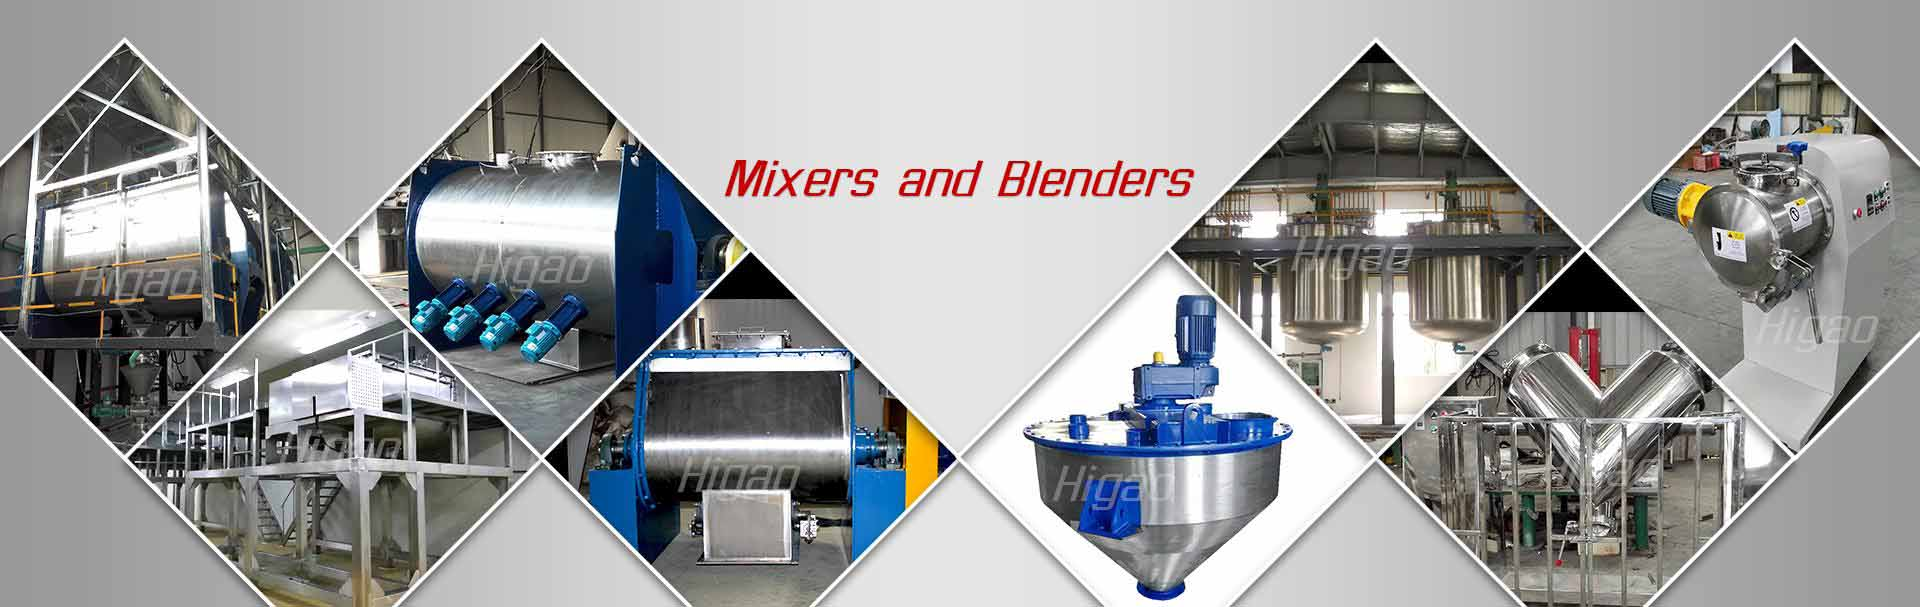 Mixers and Blenders manufacturer